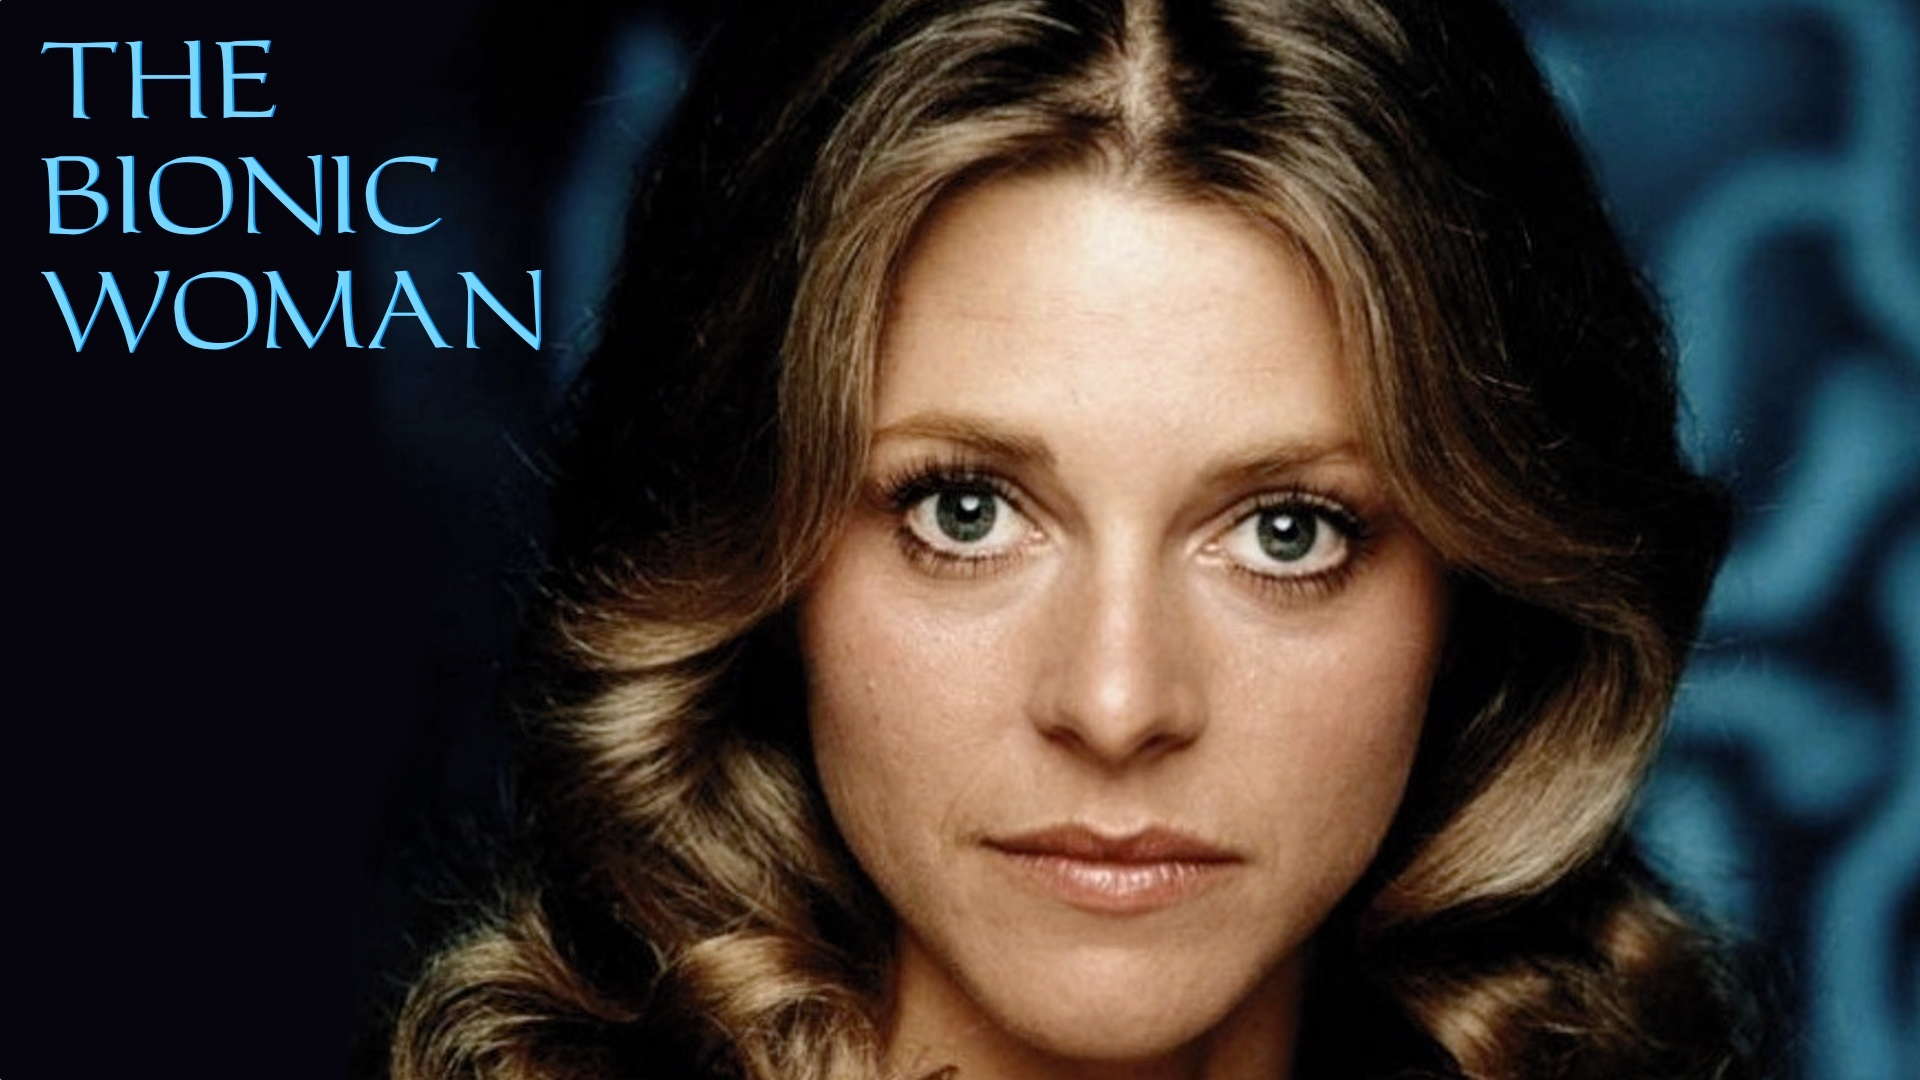 The Bionic Woman Reminds Us Why Our Childhood Was Awesome